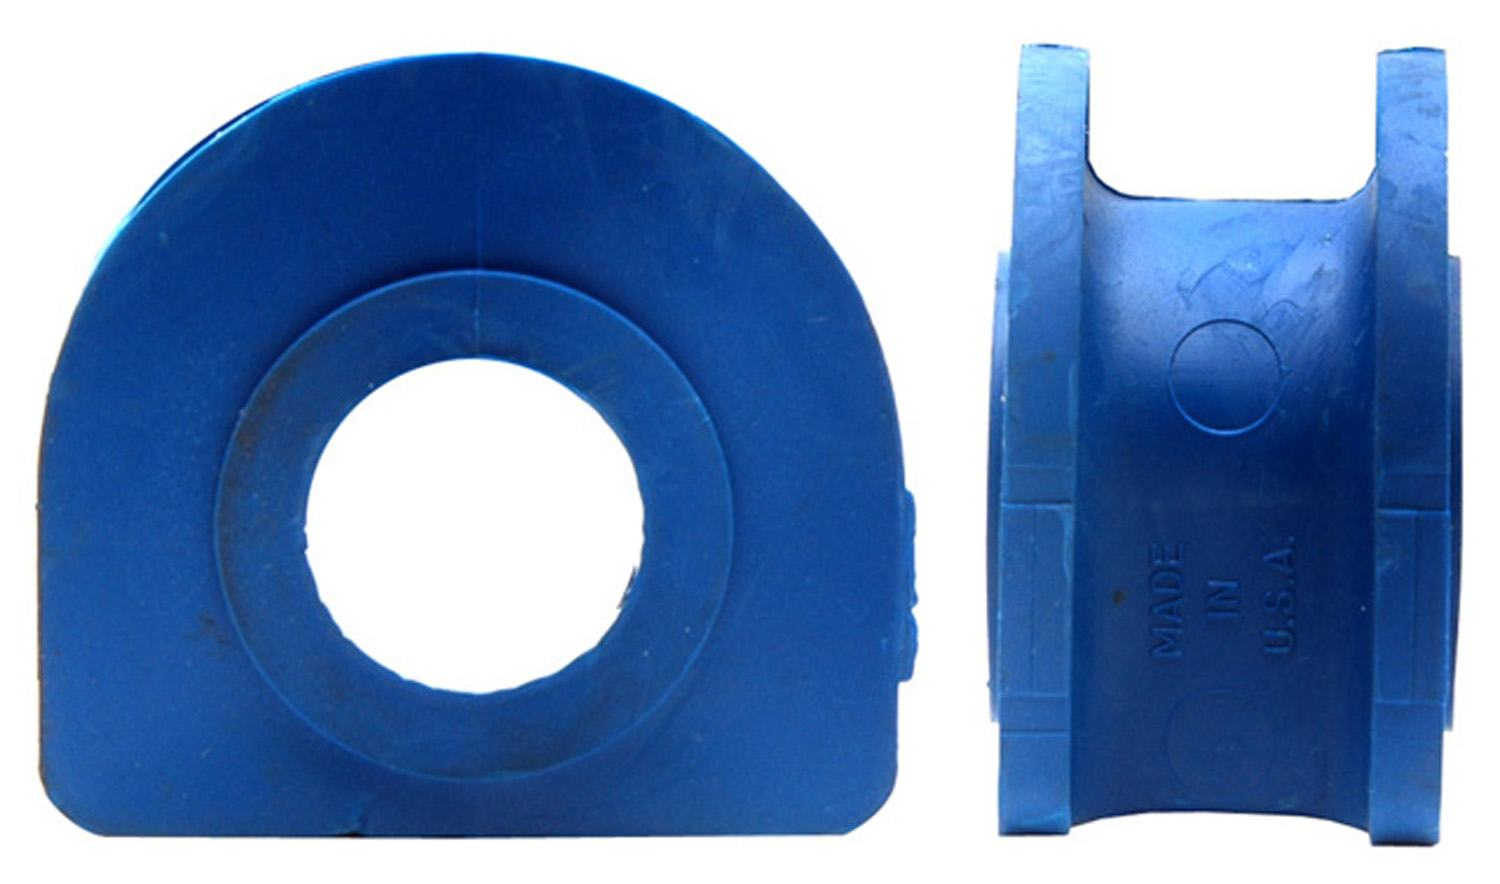 ACDELCO GOLD/PROFESSIONAL - Suspension Stabilizer Bar Bushing Kit (Front To Control Arm) - DCC 45G0630